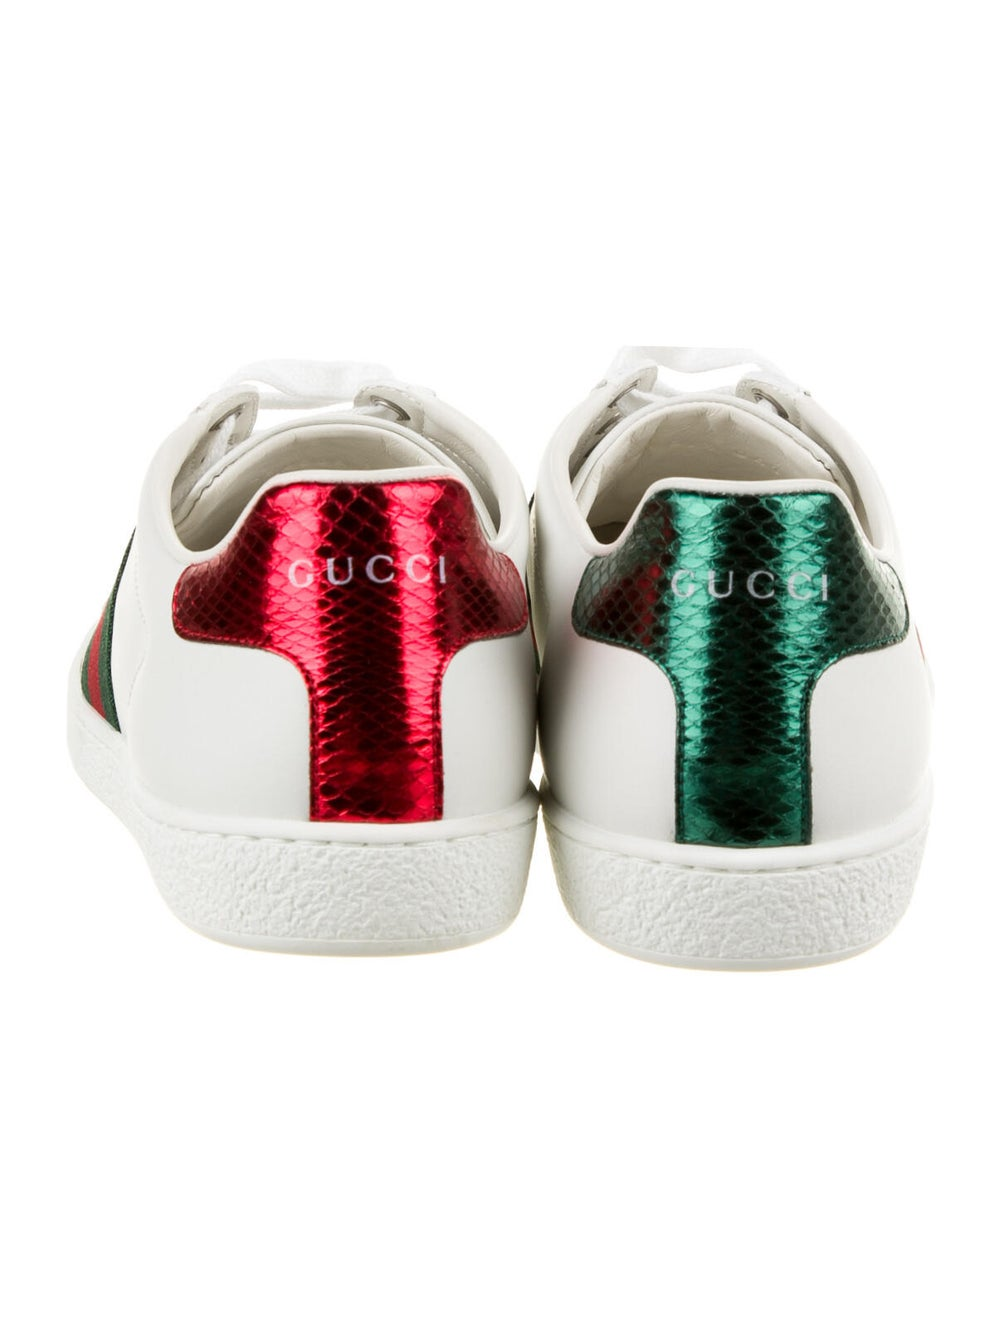 Gucci Web Accent Leather Sneakers White - image 4